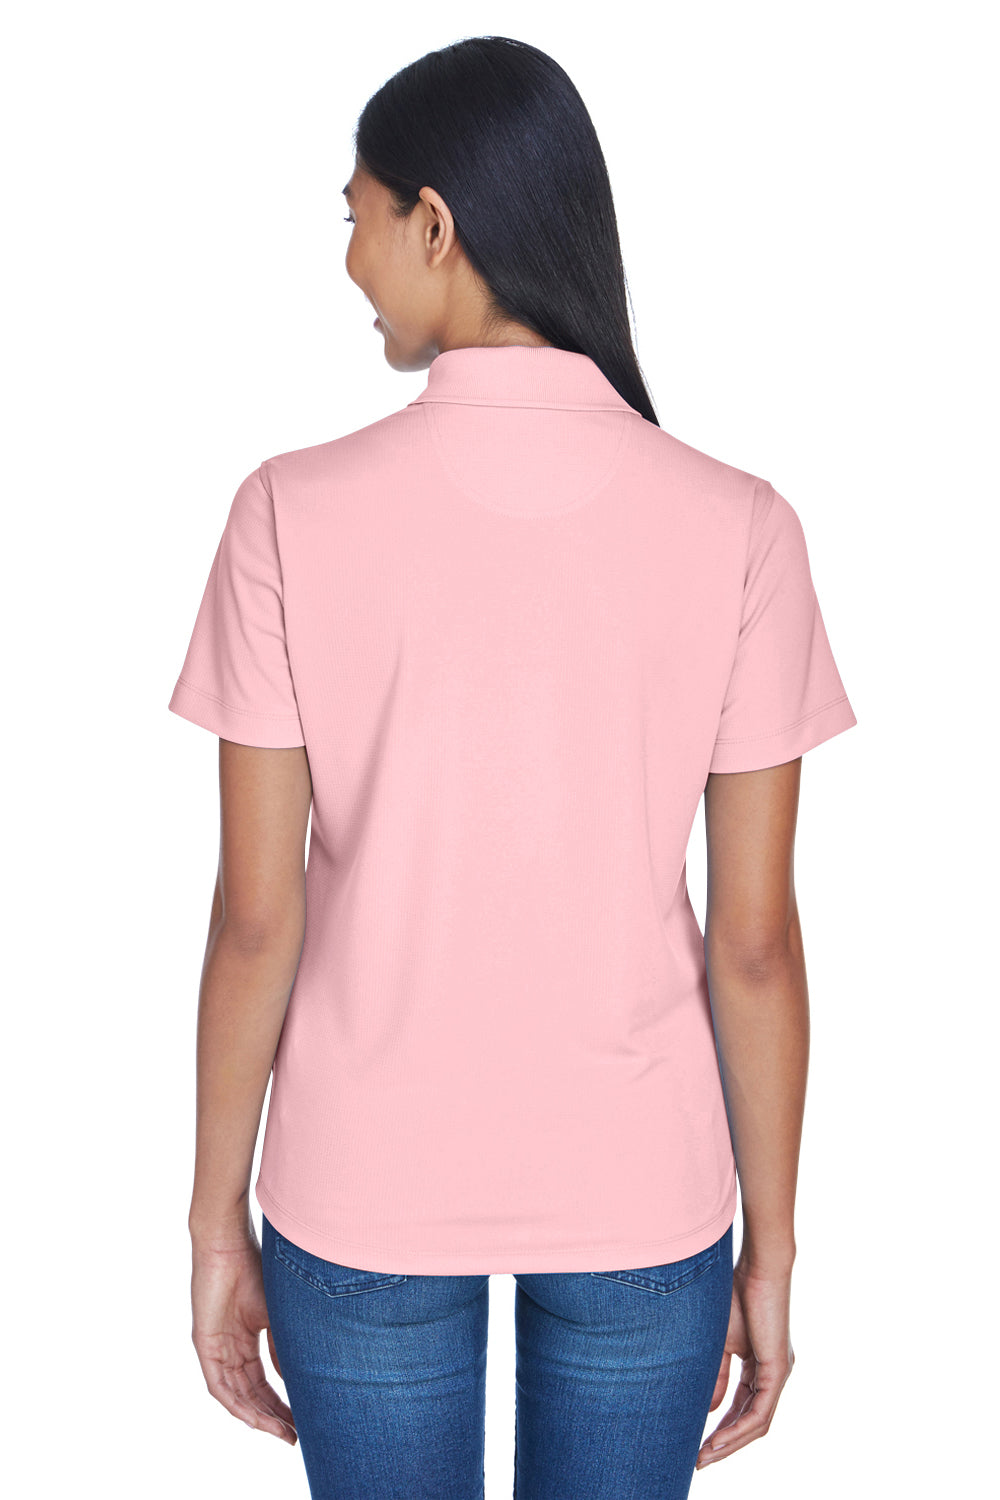 UltraClub 8445L Womens Cool & Dry Performance Moisture Wicking Short Sleeve Polo Shirt Pink Back